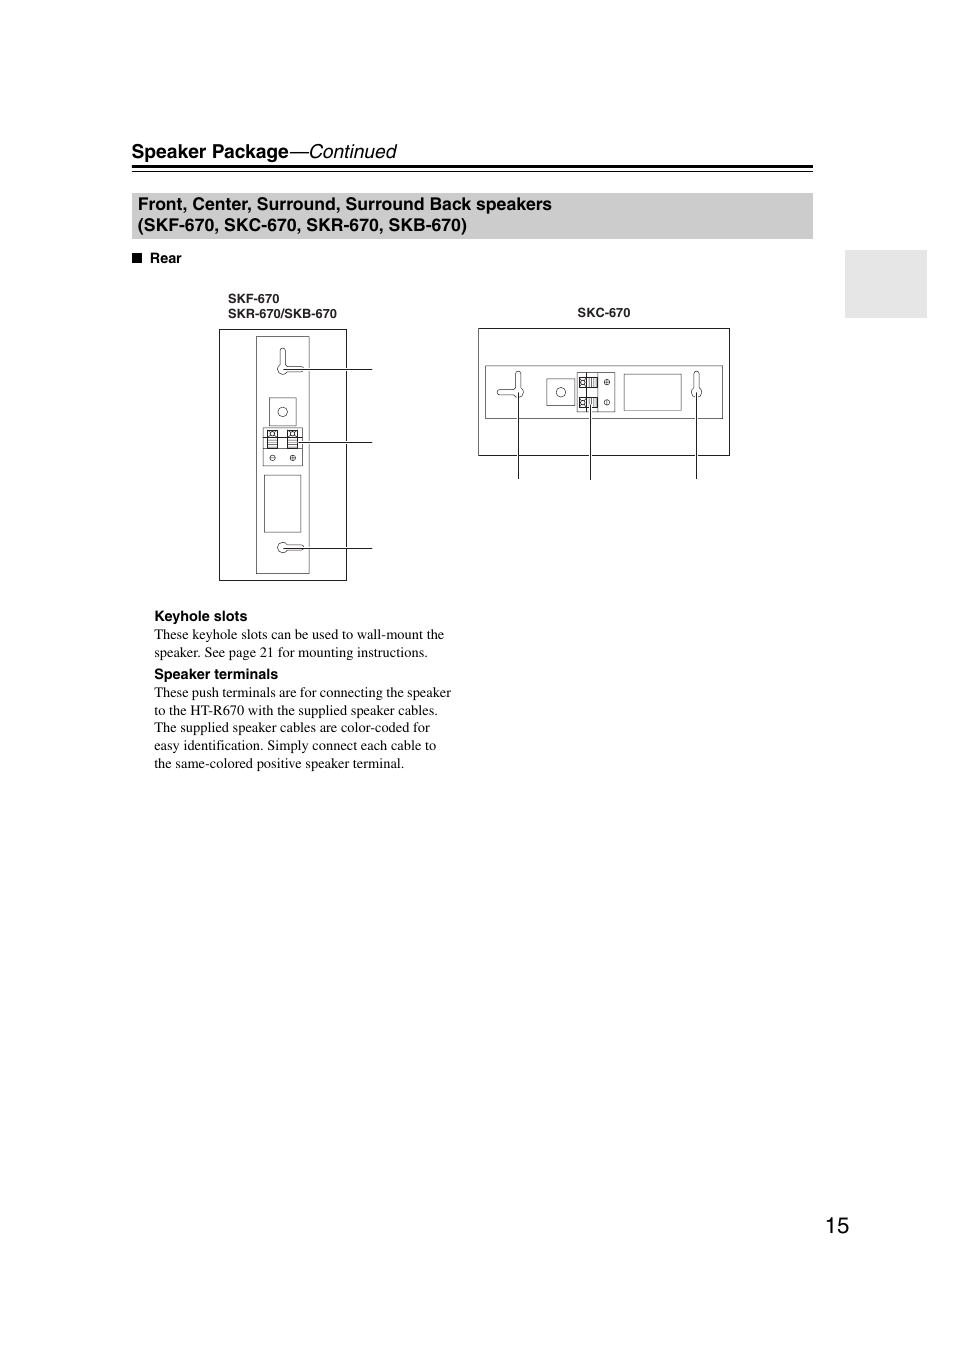 Front Center Surround Back Speakers Skf 670 Skc Onkio For Home Theater Wiring Diagrams Skr Skb Onkyo 29344937 User Manual Page 15 100